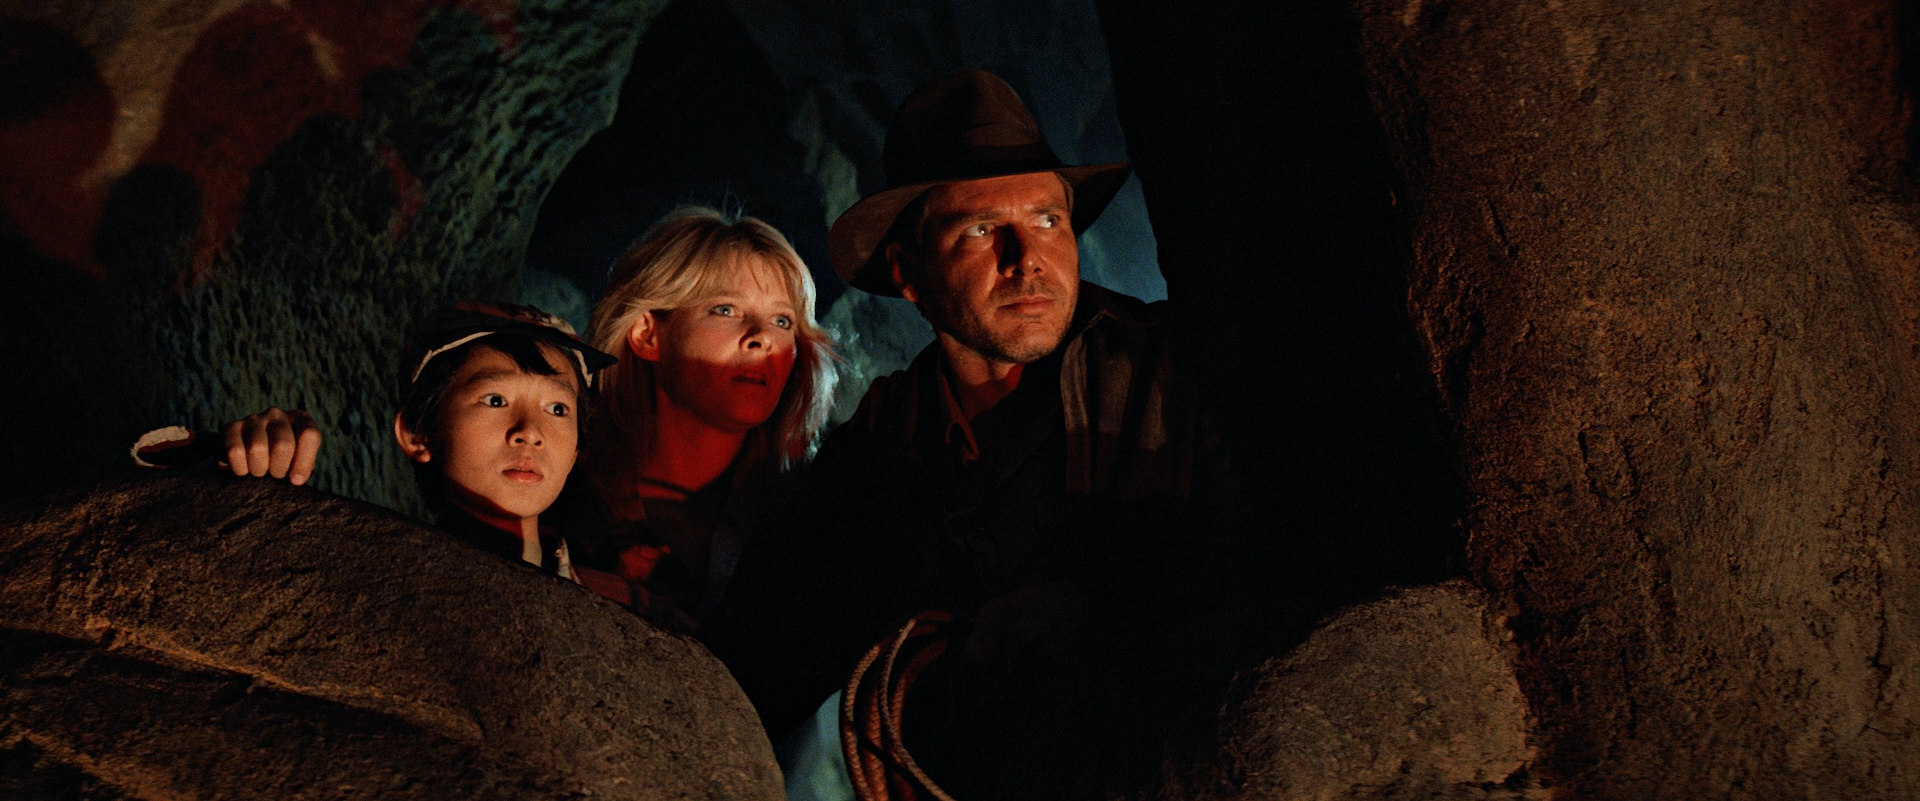 indiana_jones_and_the_temple_of_doom_preview_1